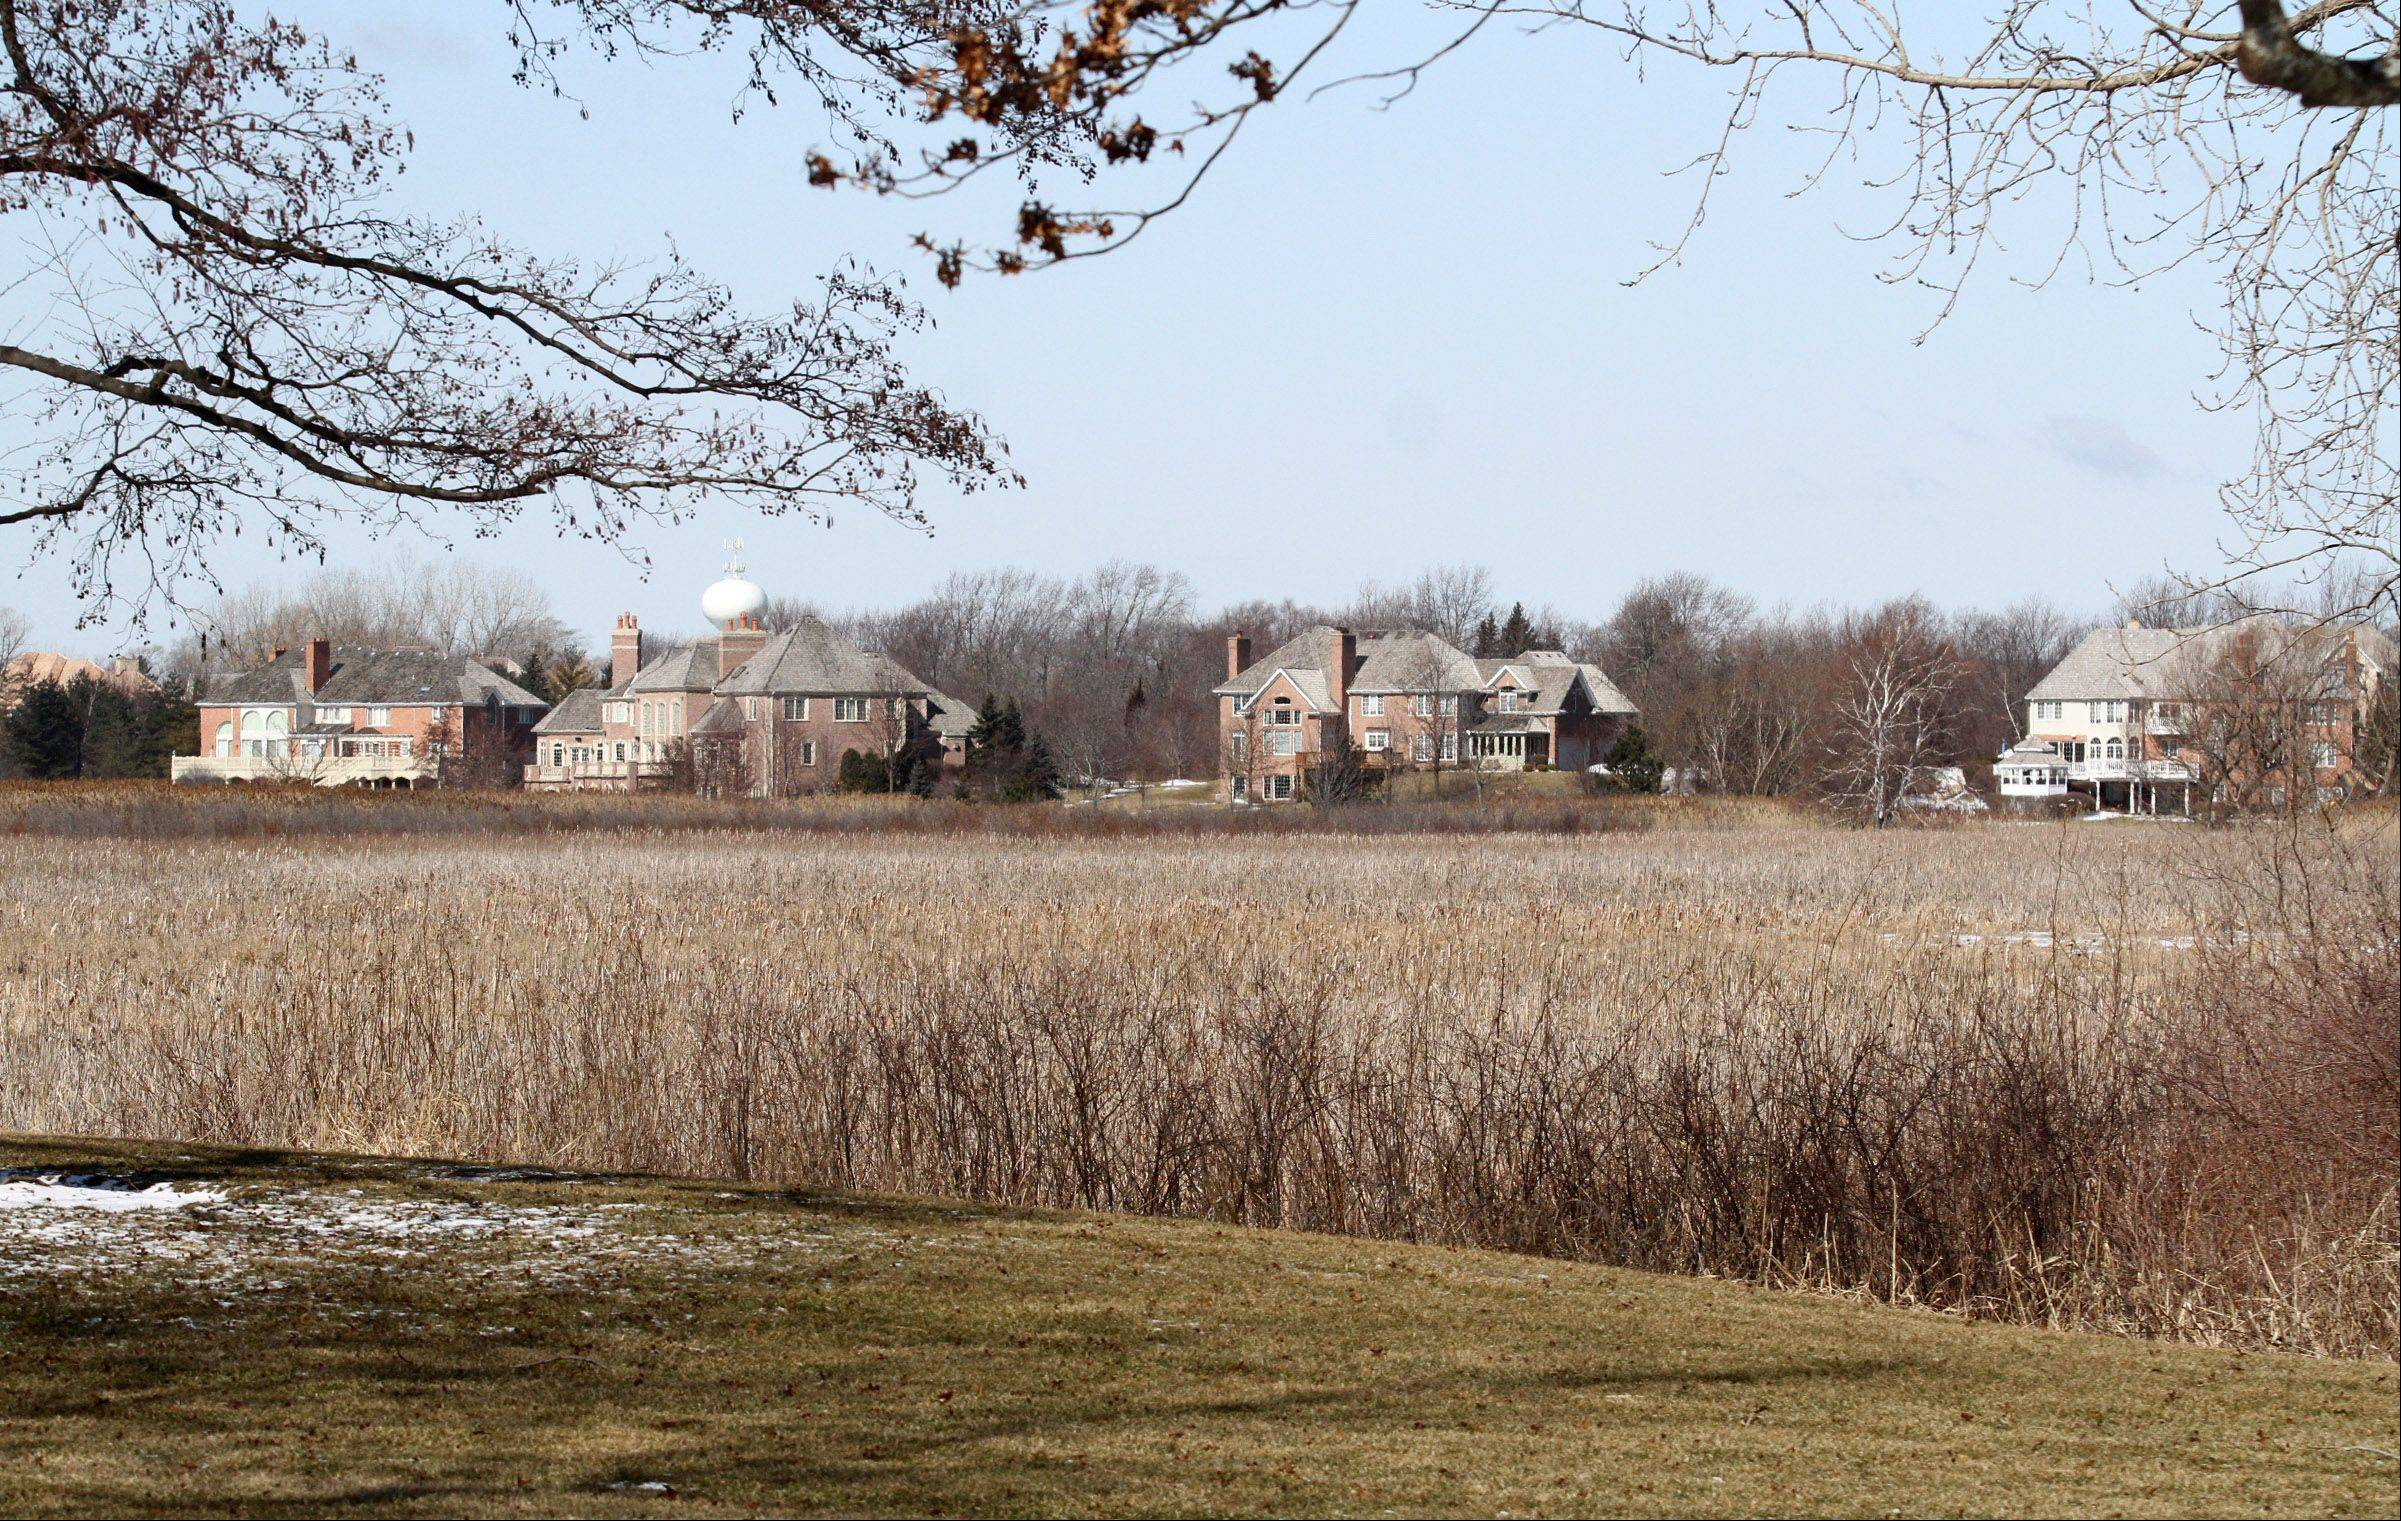 The view from Galloway Drive and Drummond Circle in Inverness Hills shows how much open space residents enjoy.